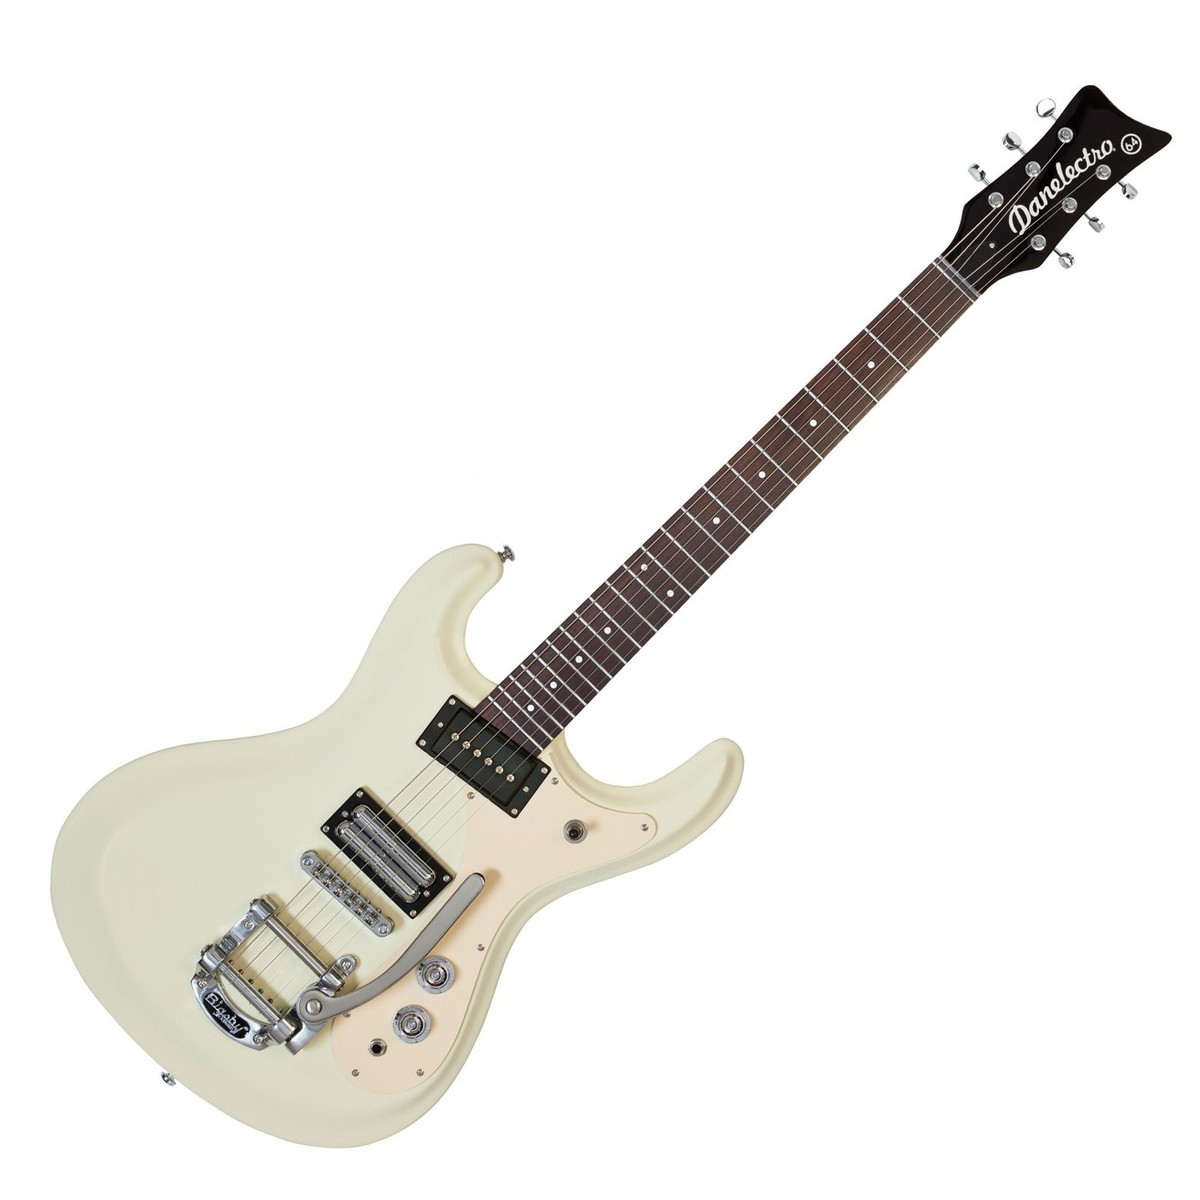 danelectro 64 electric guitar vintage white at. Black Bedroom Furniture Sets. Home Design Ideas